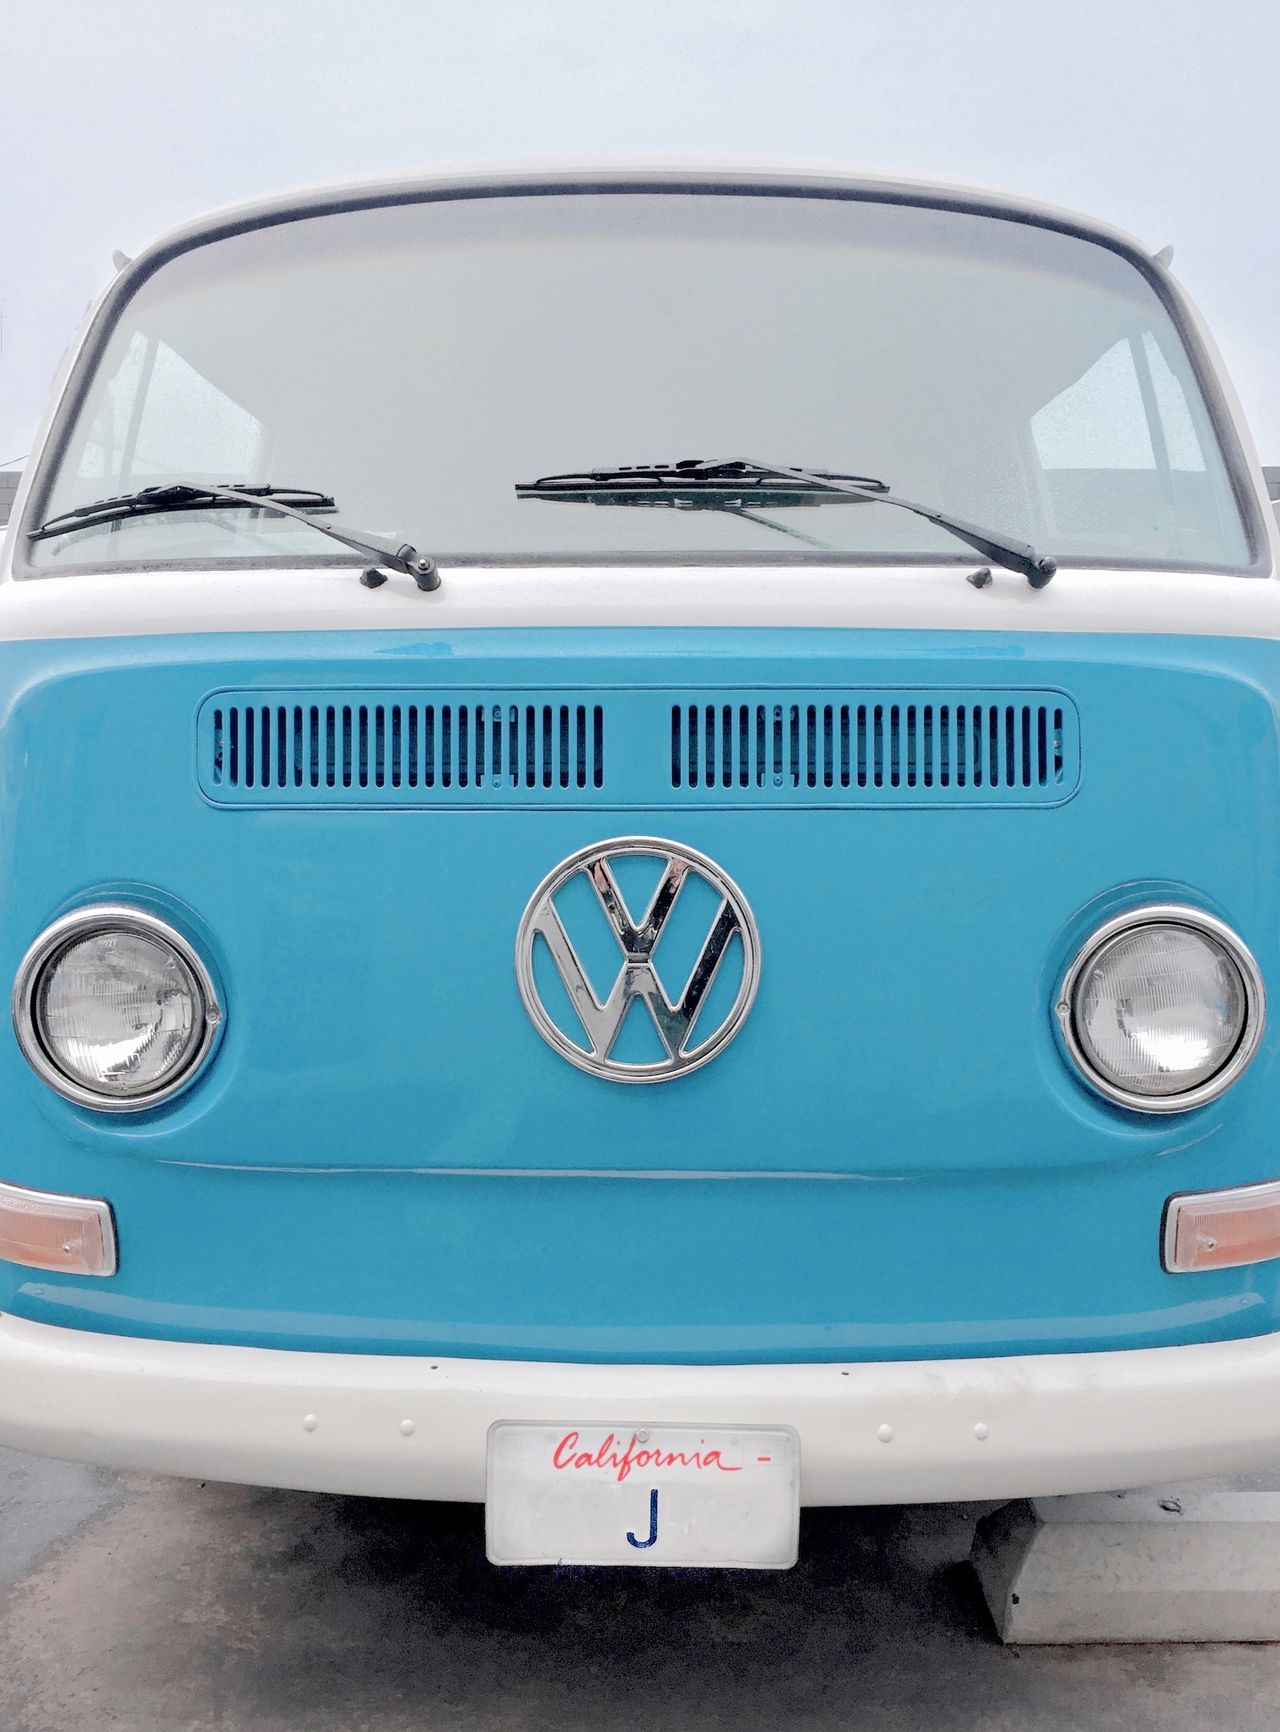 Baby Blue California California Dreaming Car Classic Day J No People Old-fashioned Outdoors Smile Text Transportation Volkswagen VW VW Bus